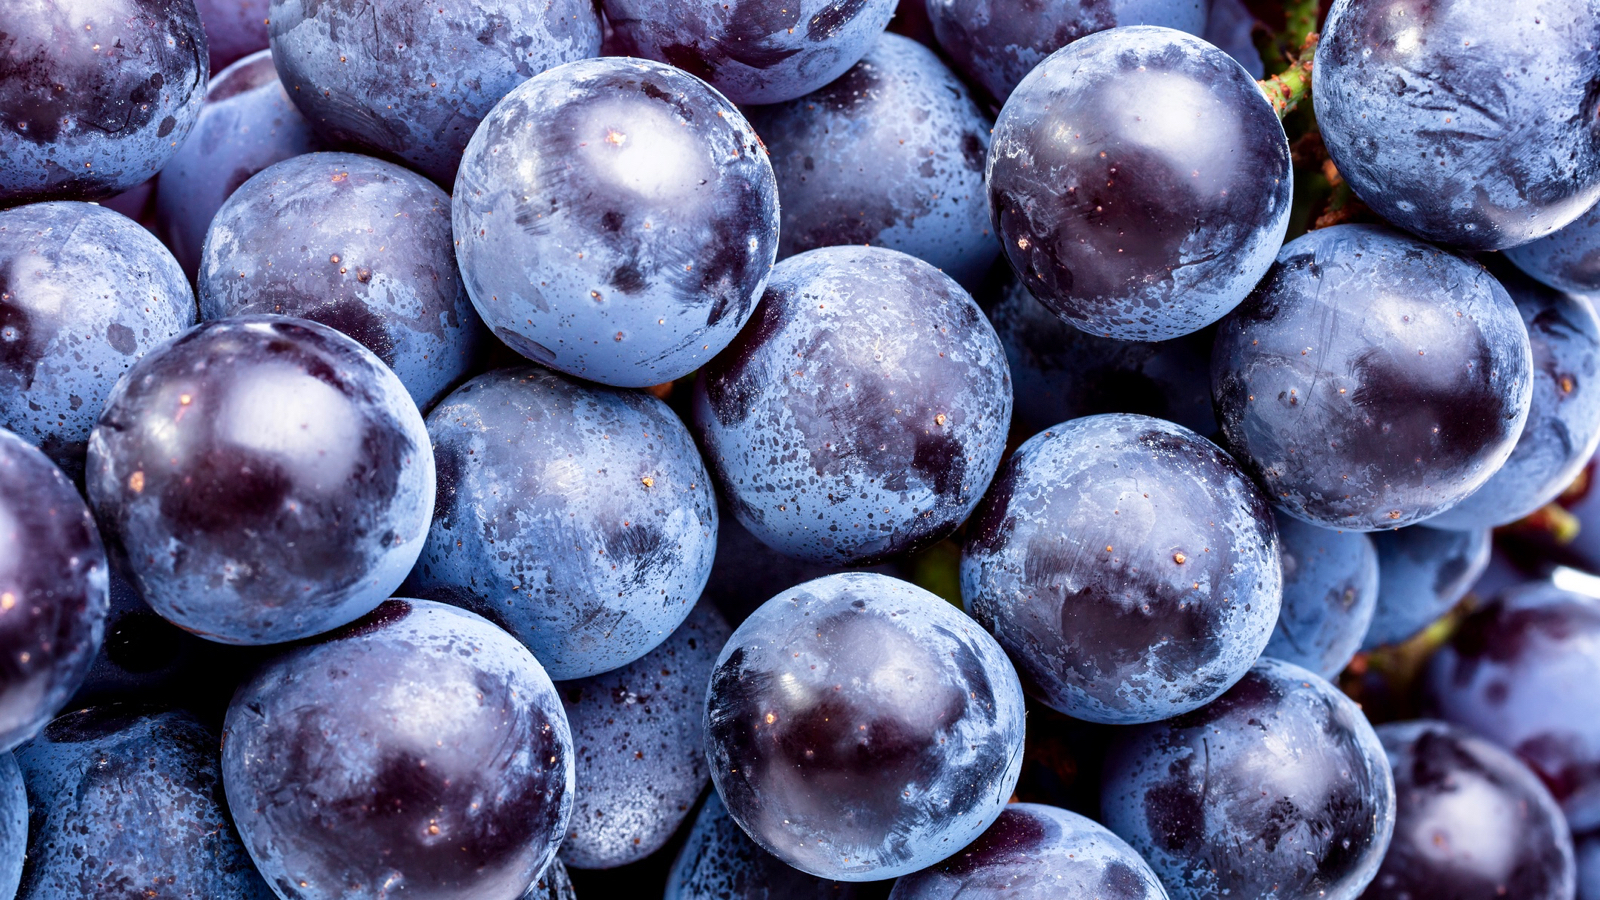 Wine Is Full Of Healthy Polyphenols. But What's A Polyphenol? photo